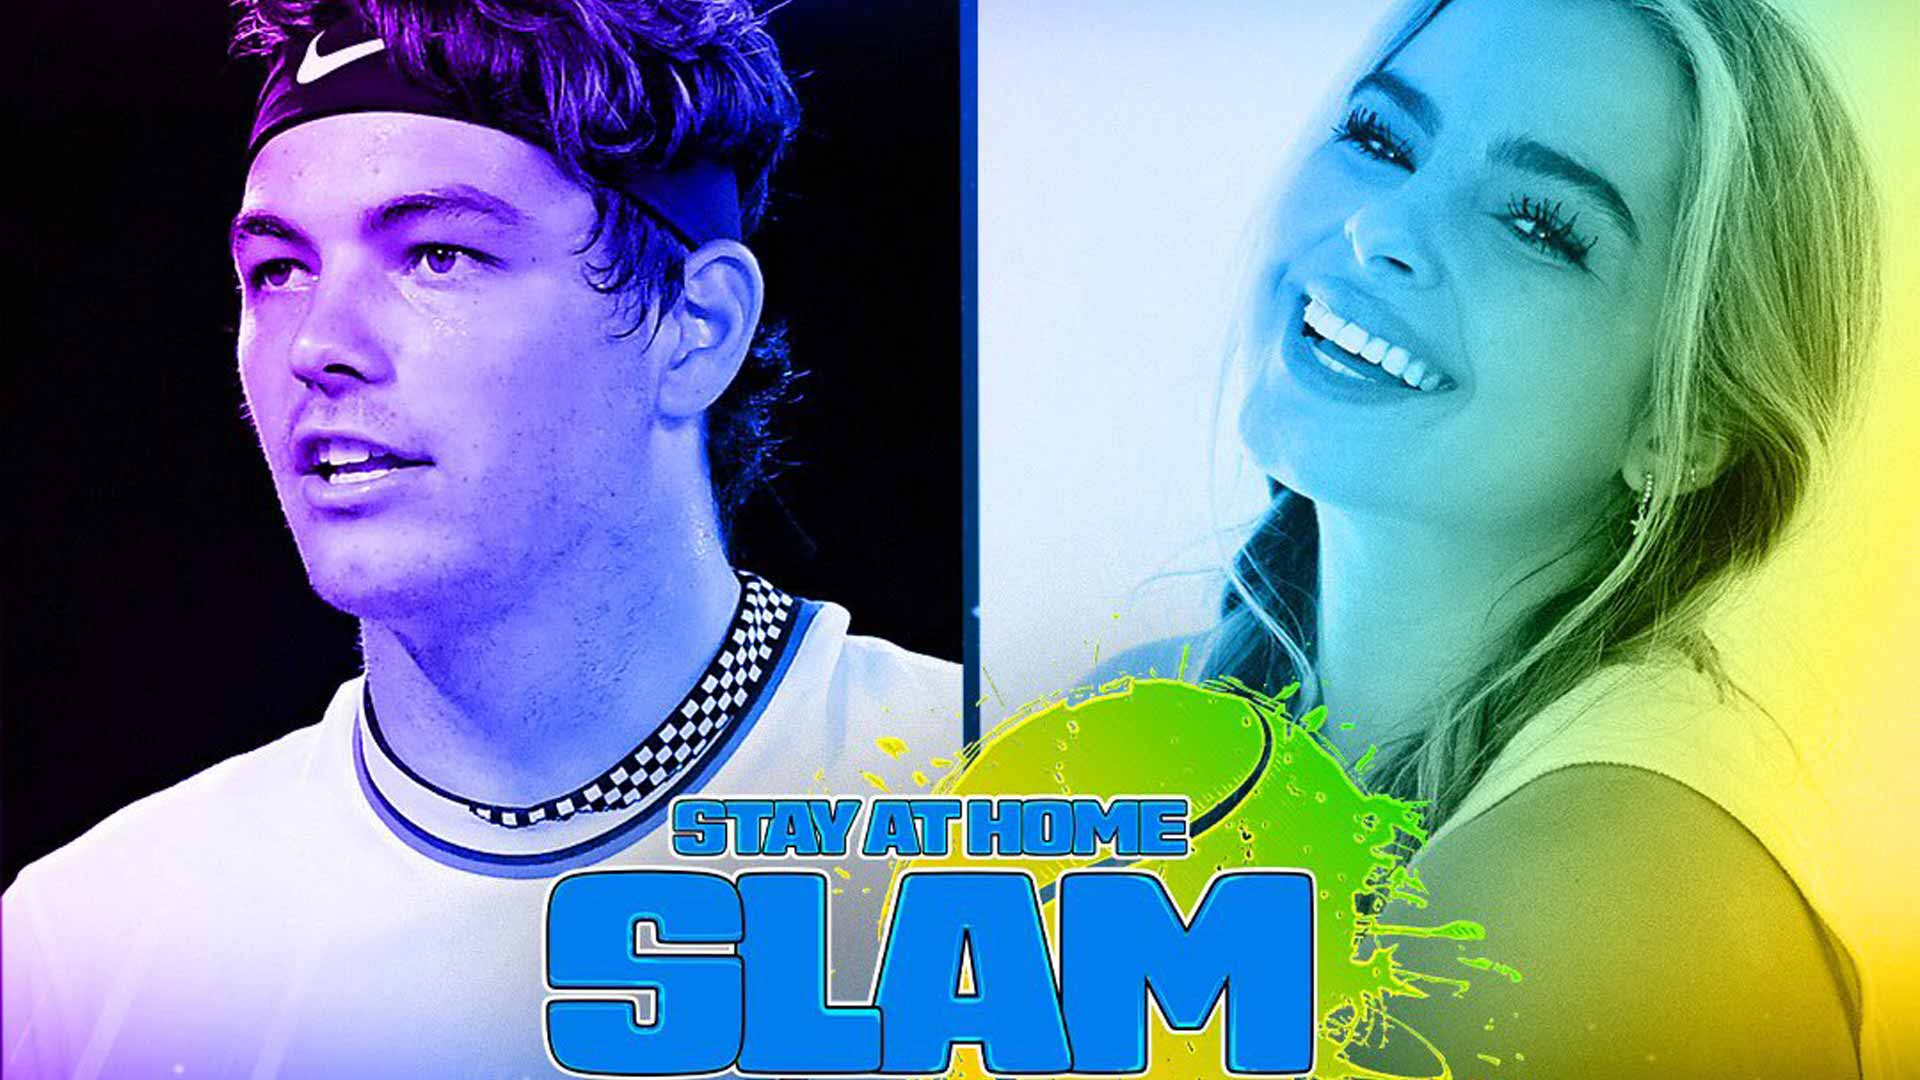 Taylor Fritz Addison Rae Clinch 1 Million Prize For Charity In Stay At Home Slam South Africa Today Sport